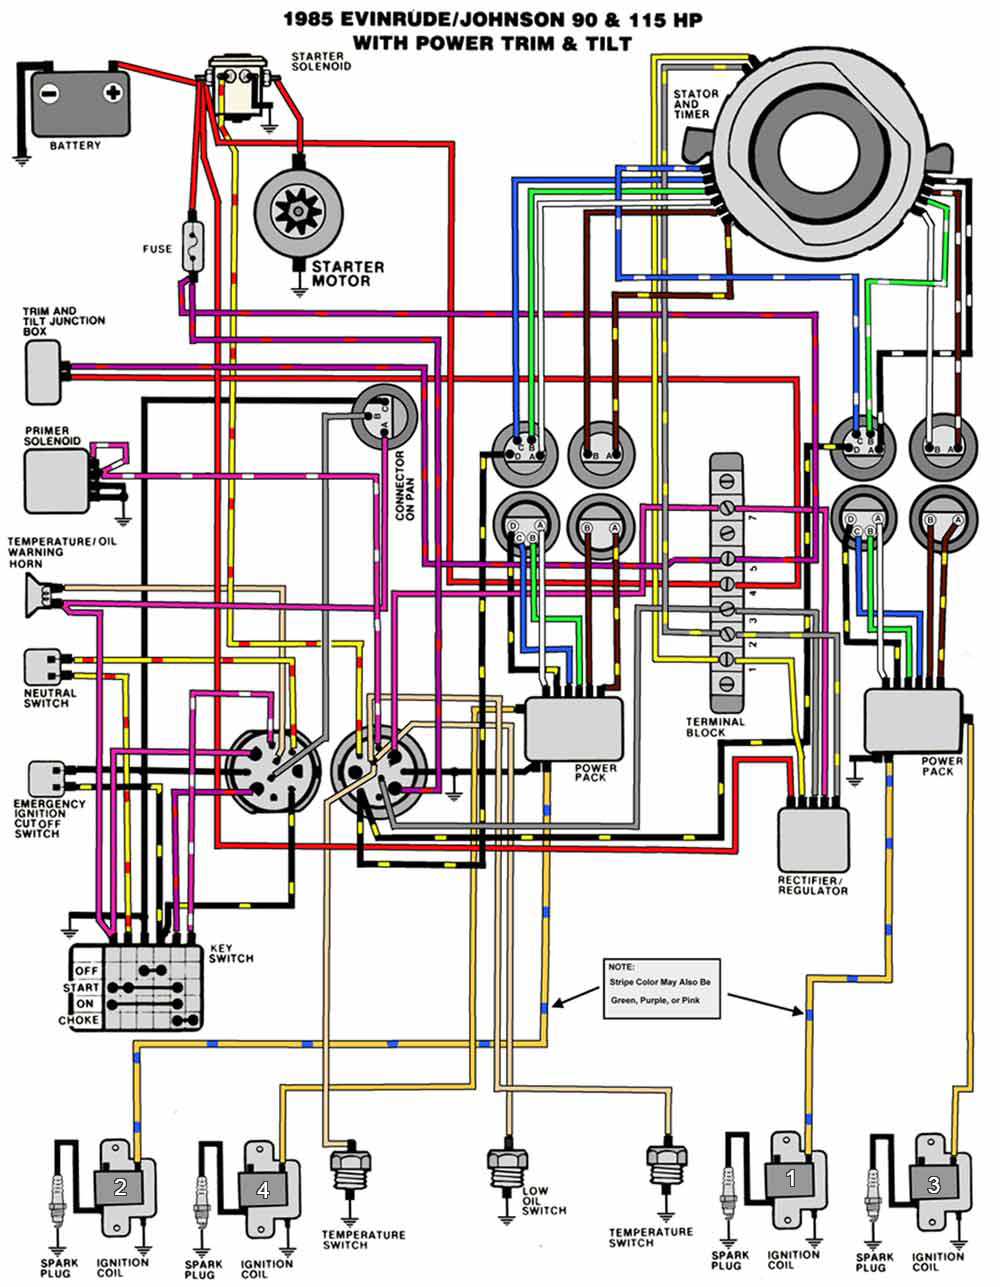 1985_90_115TnT mastertech marine evinrude johnson outboard wiring diagrams Boat Ignition Switch Wiring Diagram at cos-gaming.co